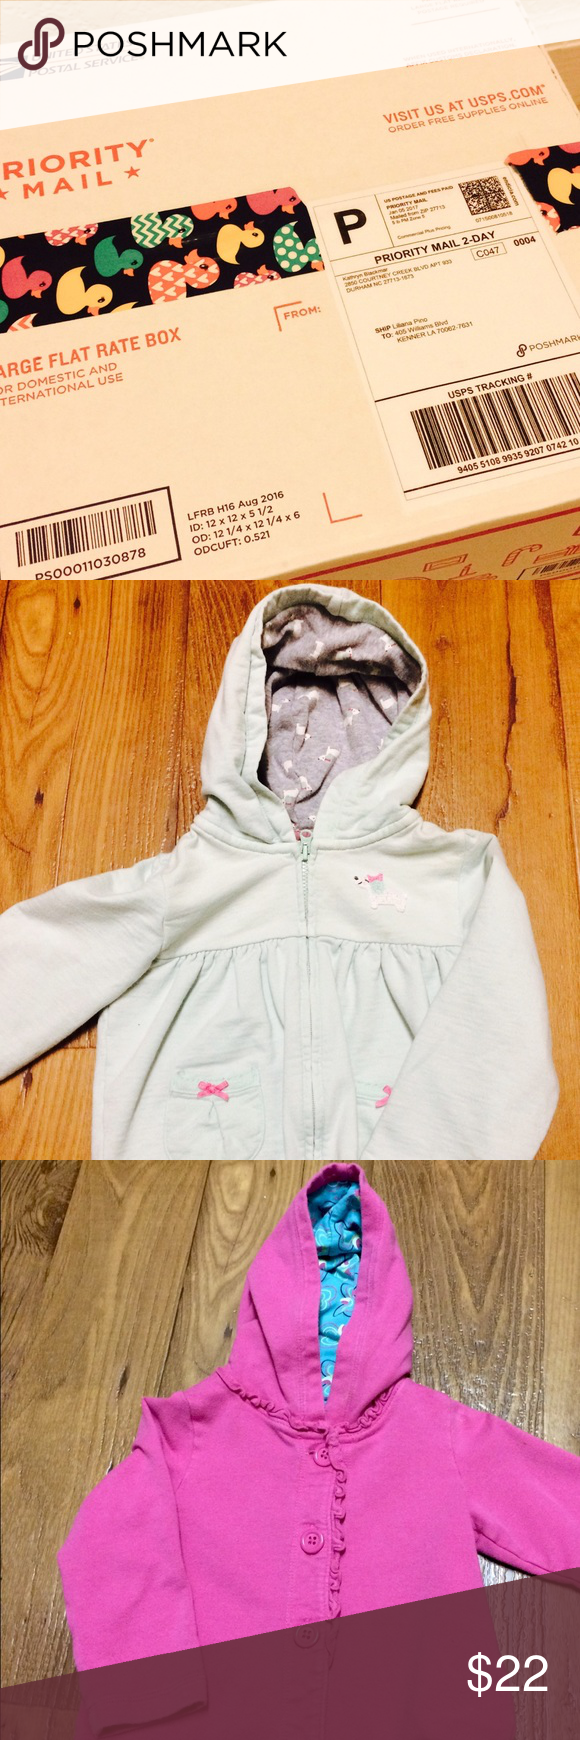 Posting for Liliana! Hey! I just wanted to let you know that I have shipped out your baby niece's package! I also came across two other little jackets in her size too, and I would LOVE to include these in a new shipment to you free of charge if you find anything else you like! Can't wait to hear how you like your newest shipments ;) xox, Katie Carter's Jackets & Coats